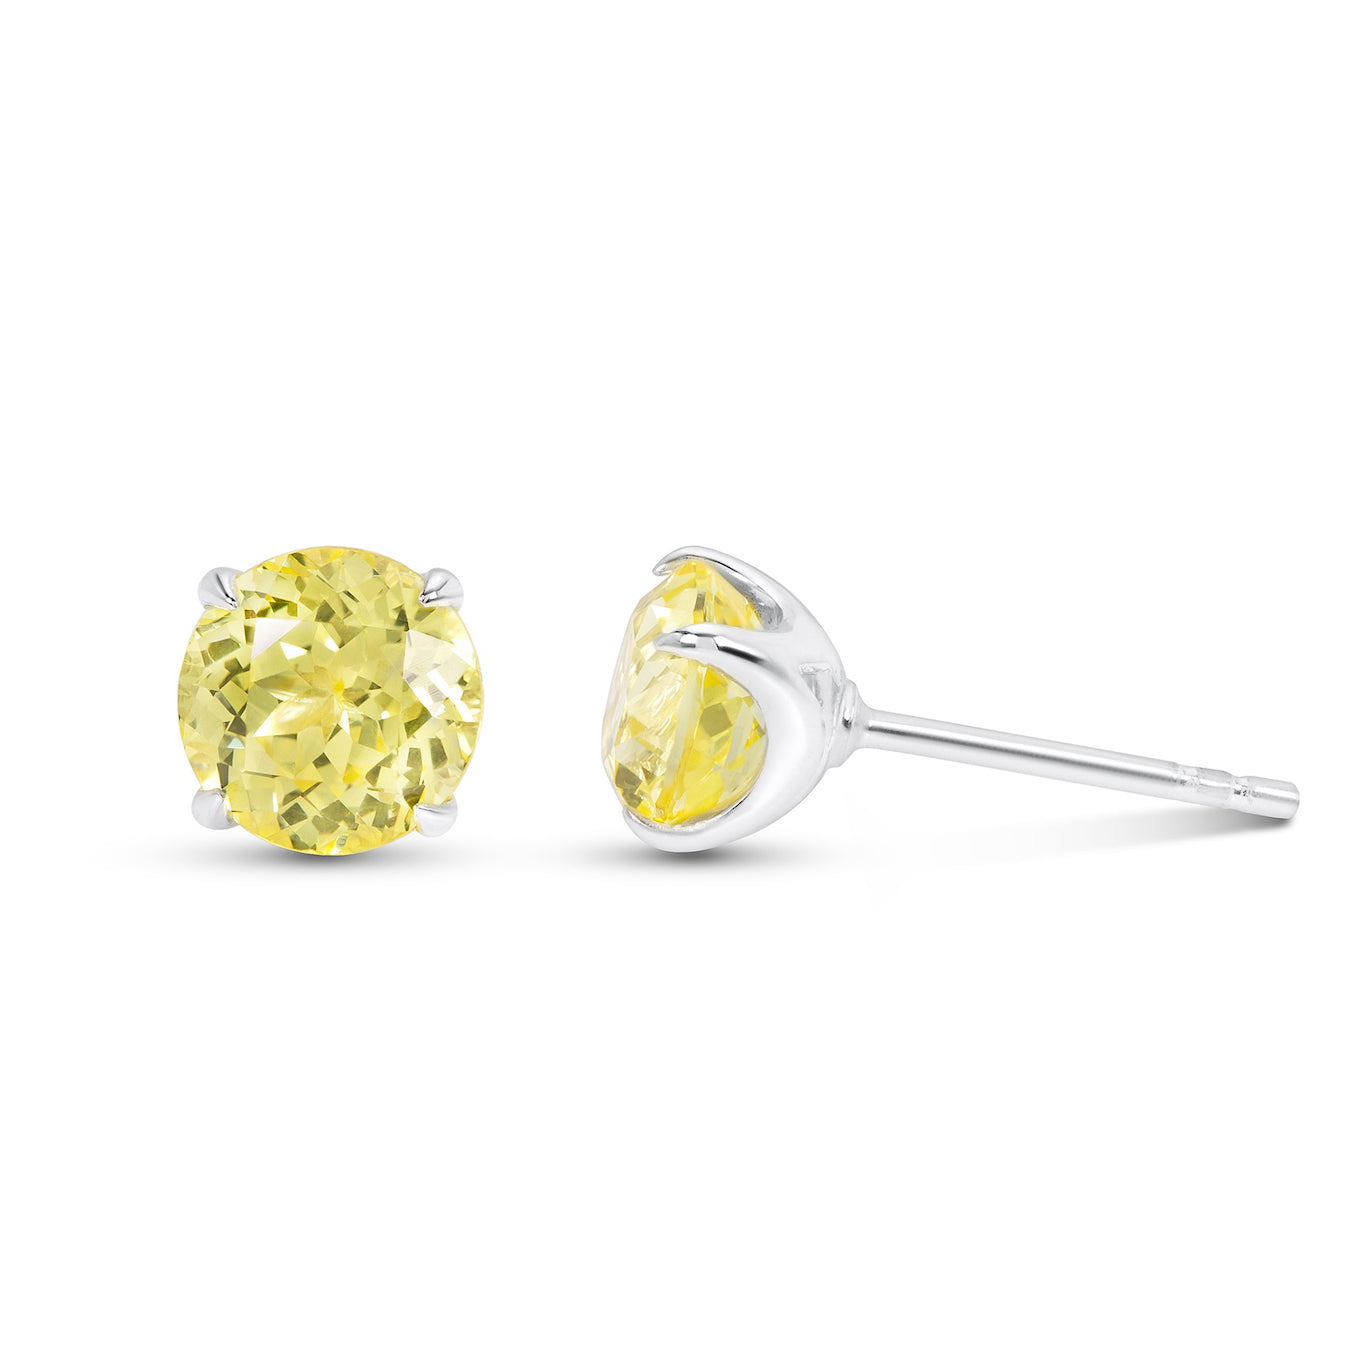 raw earring urban sweet rvati yellow progressive products stud sapphire gemstone earrings